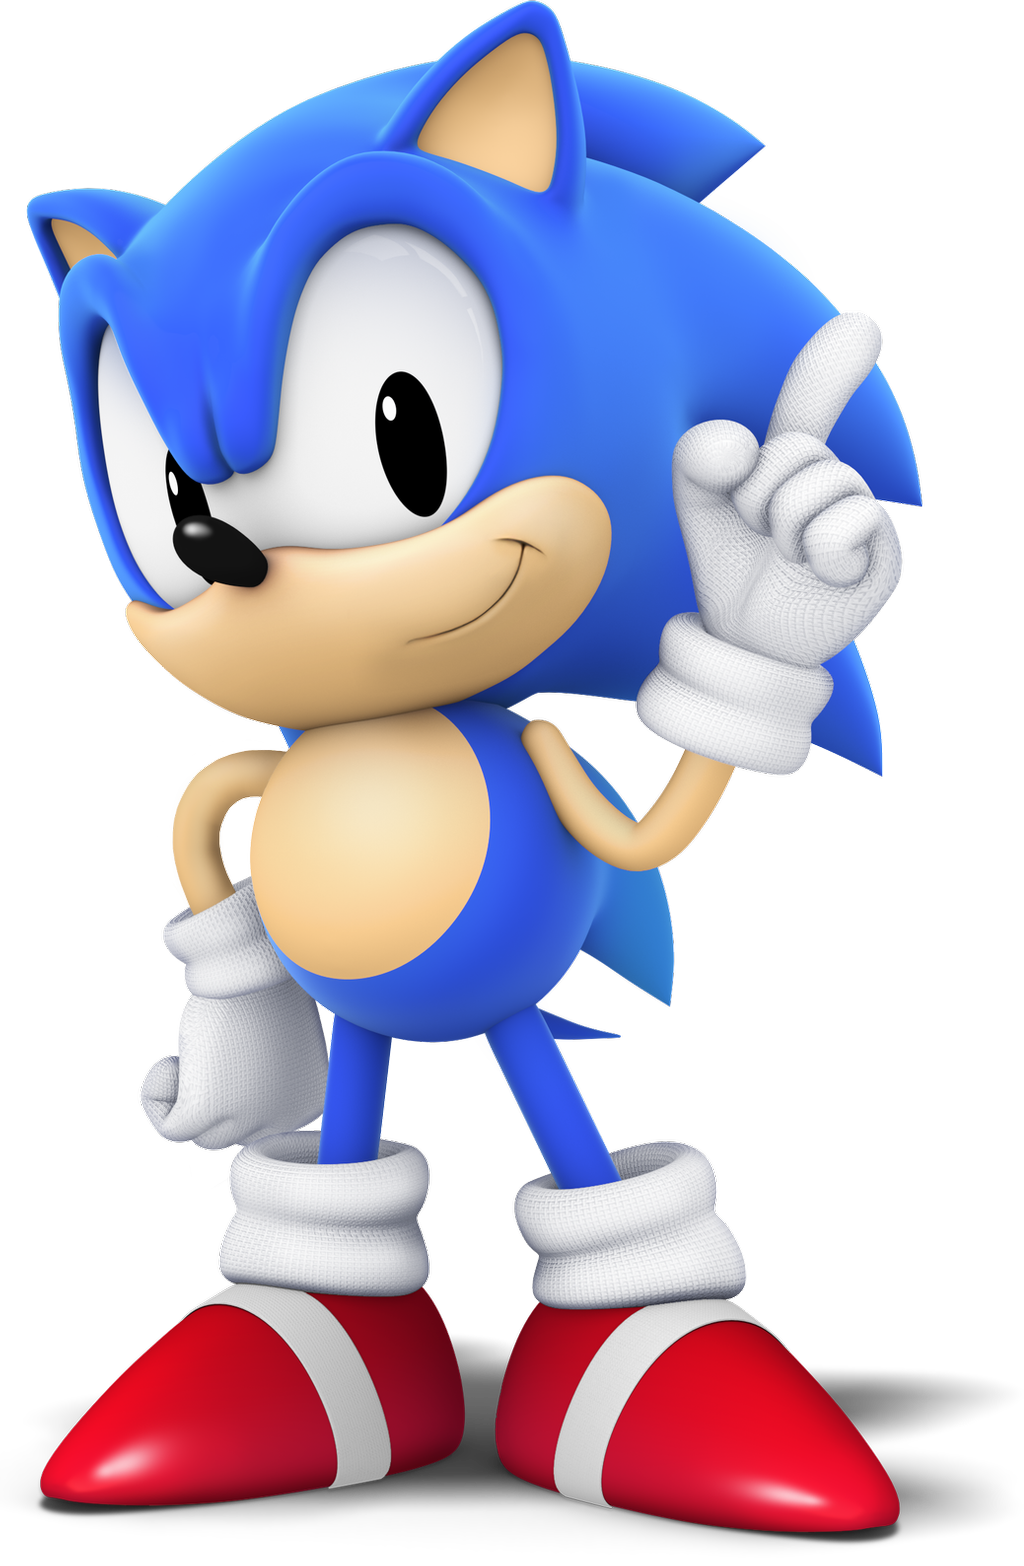 Classic Sonic (CG Style) by TomothyS on DeviantArt